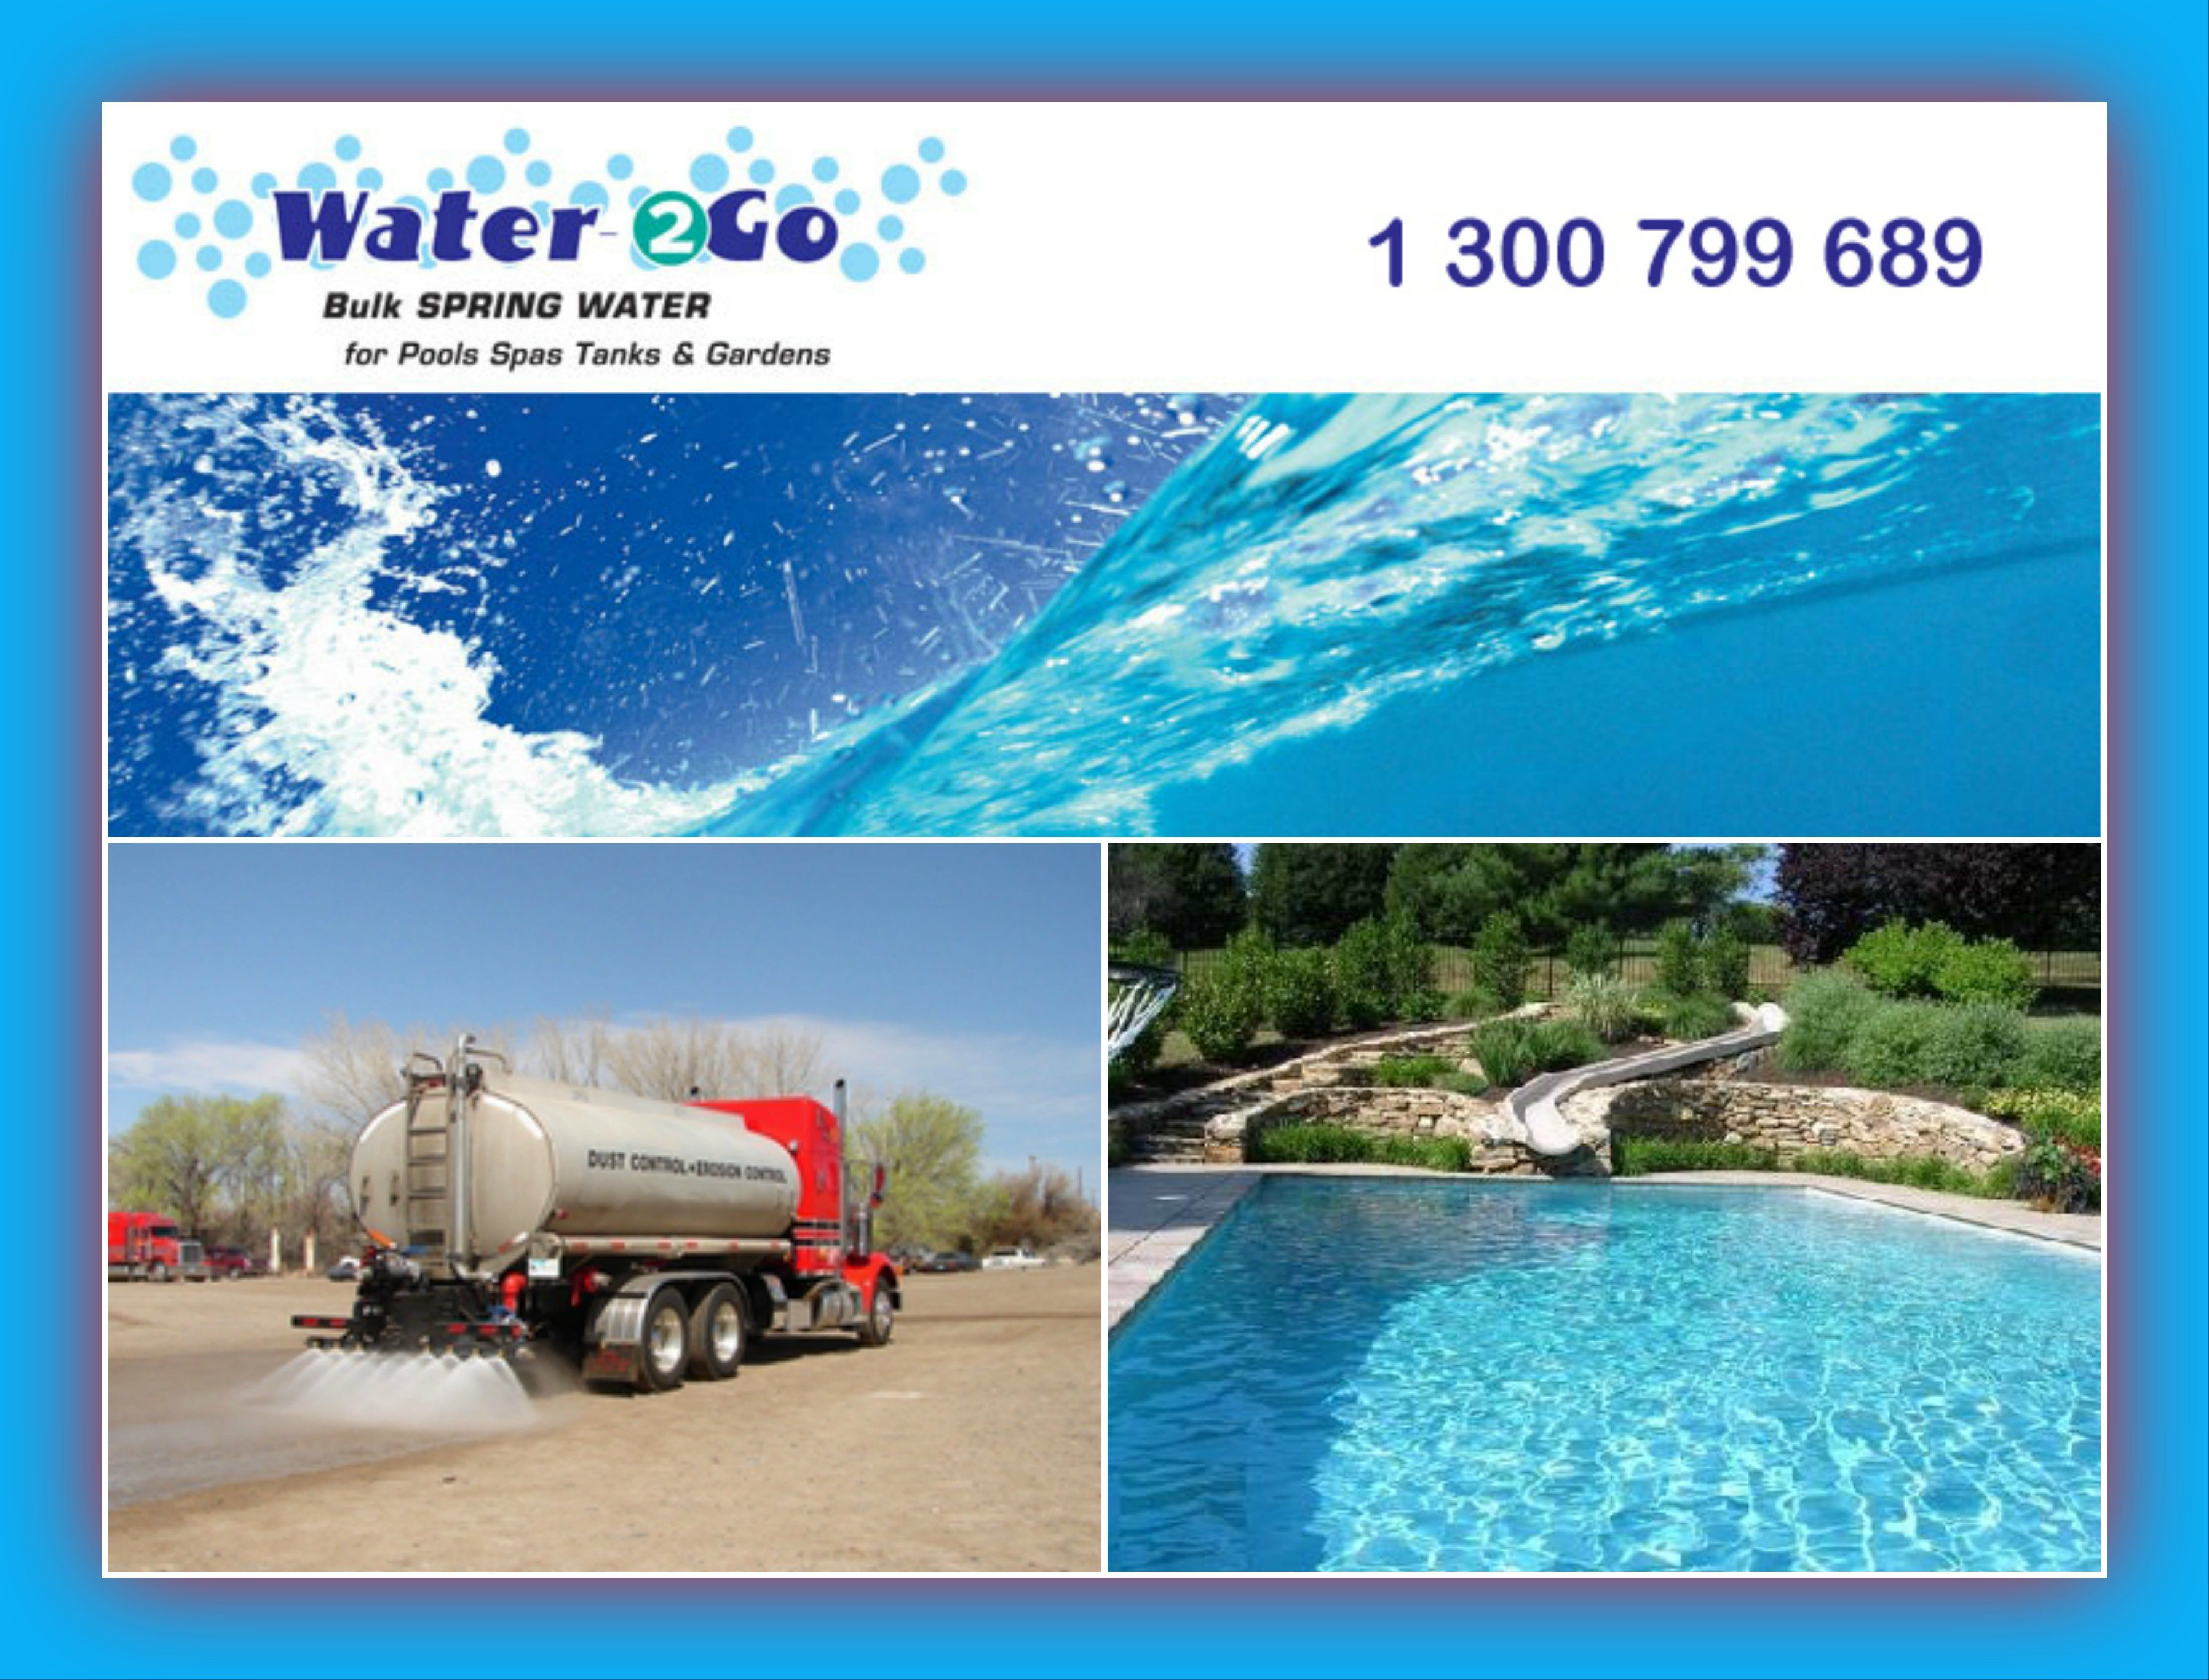 Pool Water Delivery - Water suppliers in melbourne water 2go water suppliers water delivery in melbourne is easy